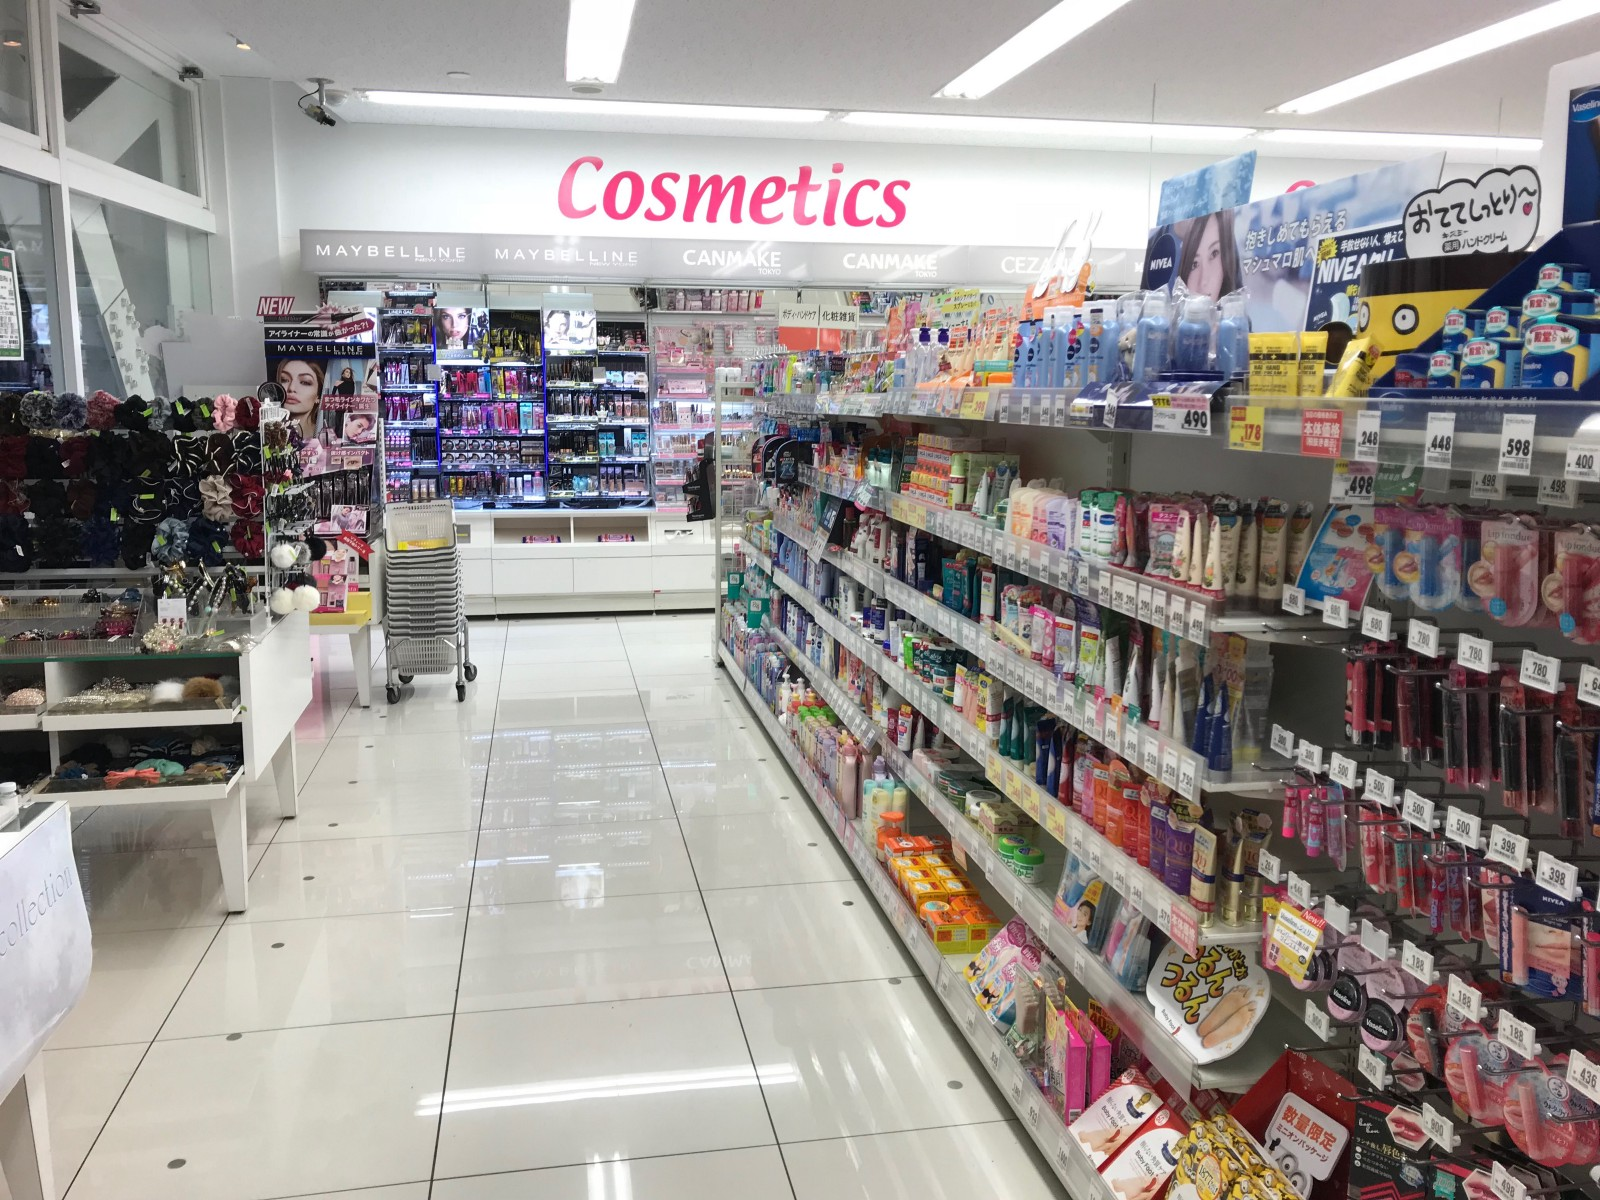 Inside the store offering a variety of cosmetics products